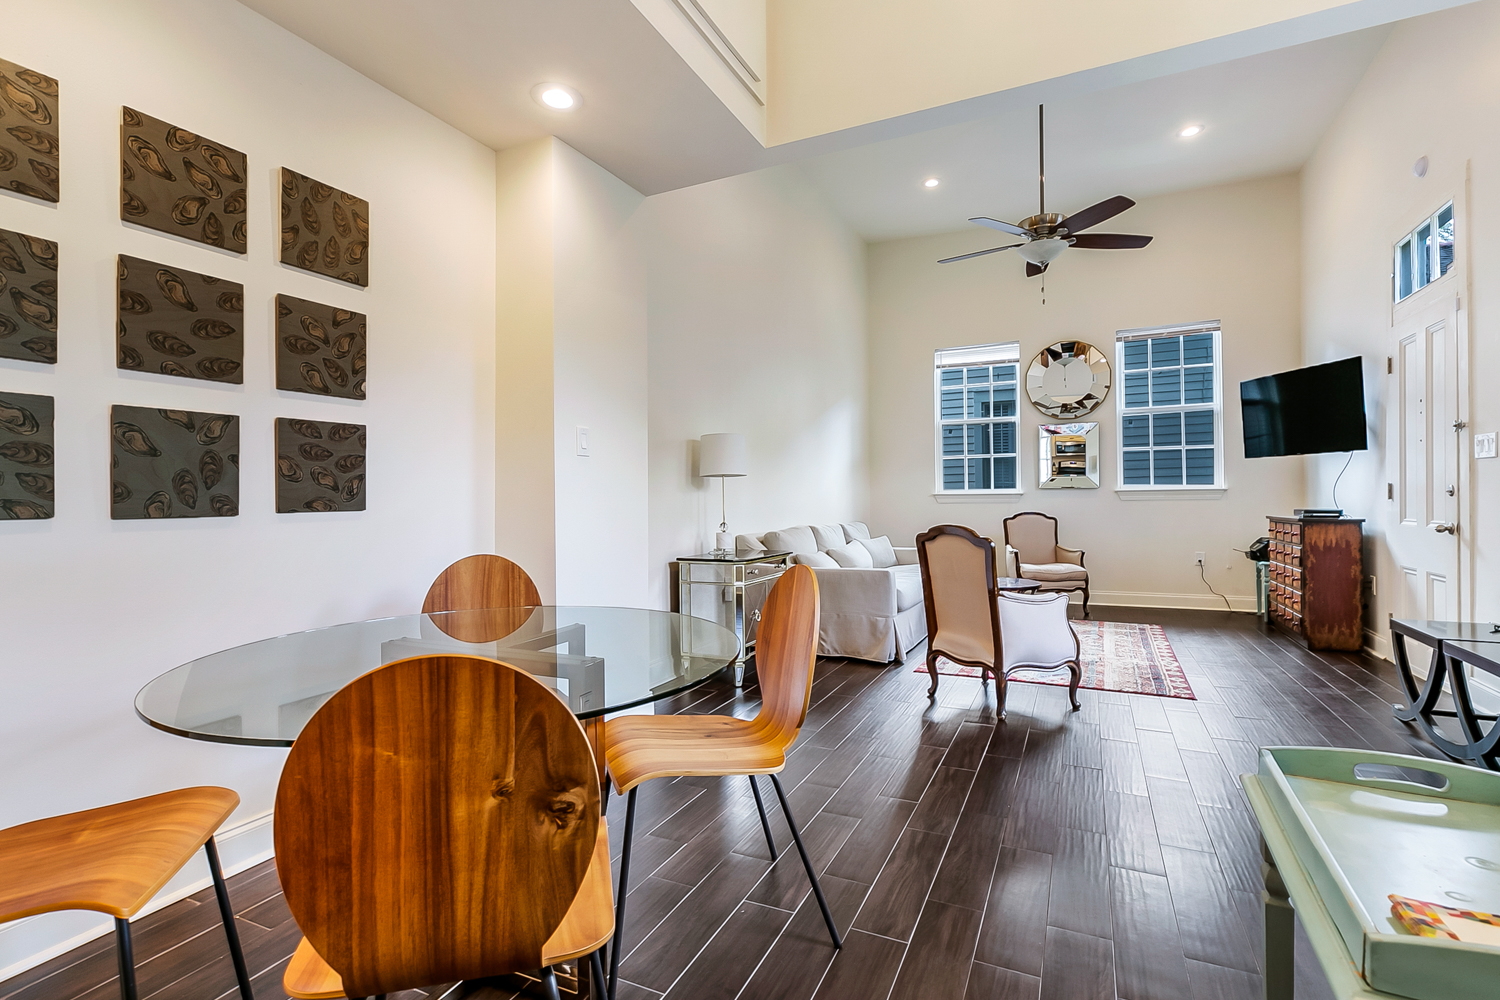 Garden District, Apartment, 1 beds, 1.0 baths, $2800 per month New Orleans Rental - devie image_8